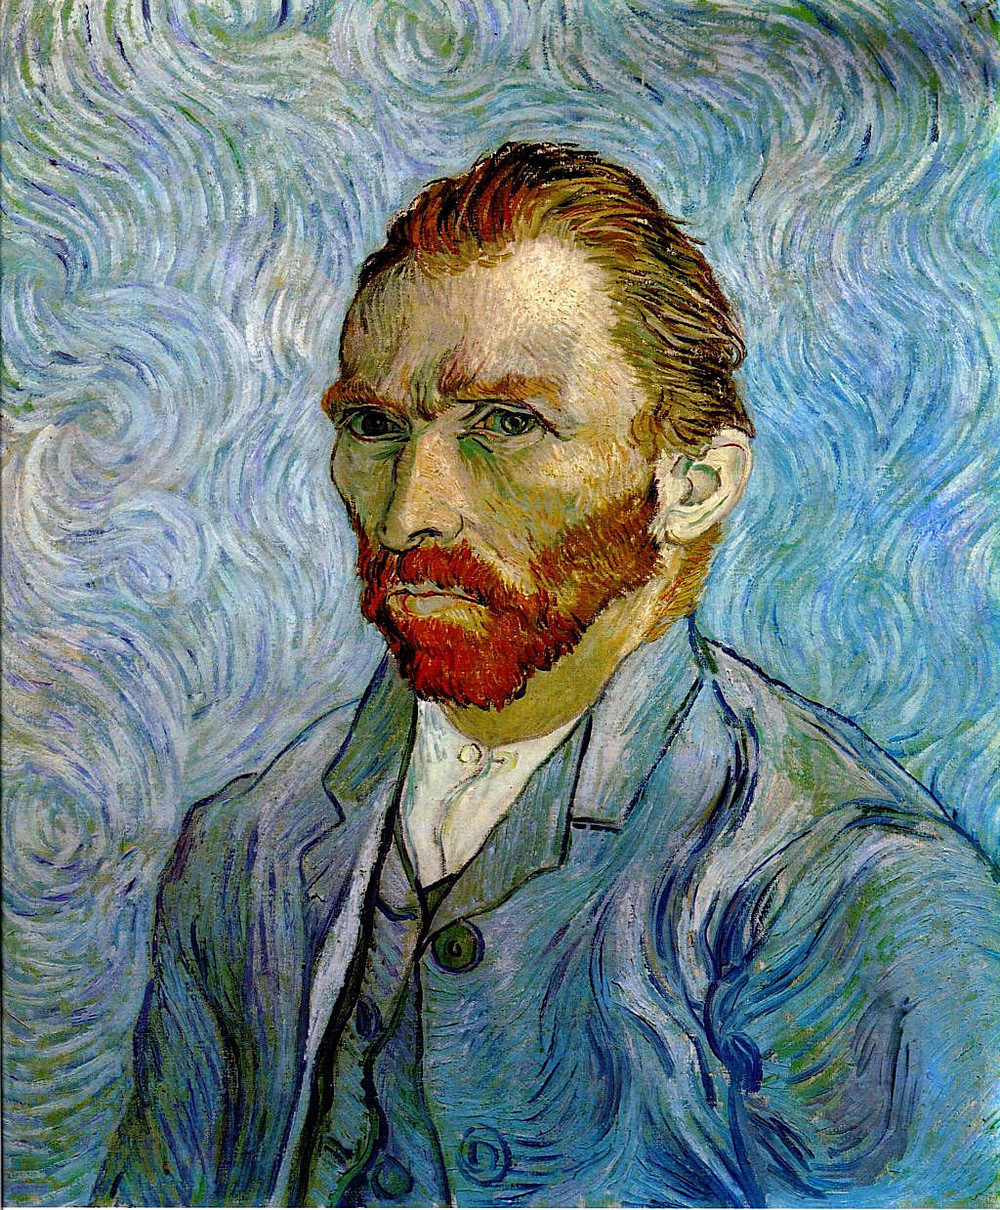 Self Portrait, Vincent van Gogh, 1889